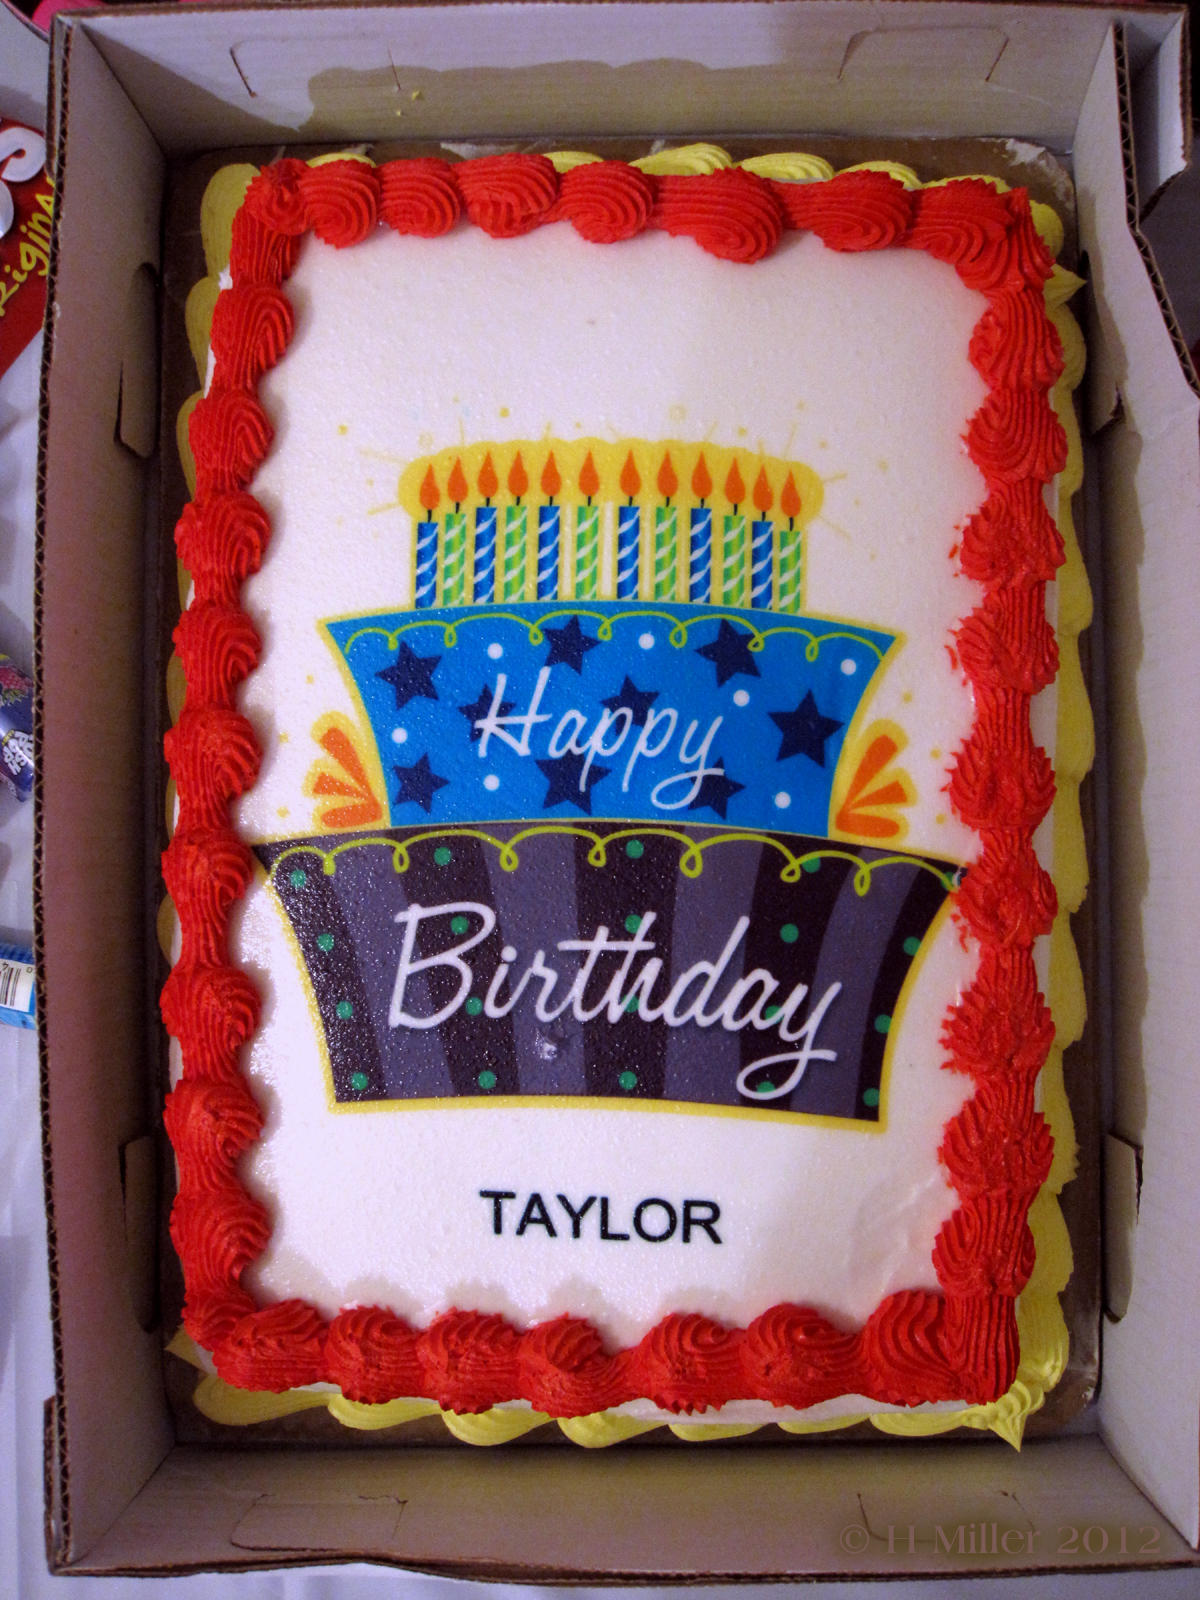 happy birthday taylor images ; Taylor-Spa-Birthday-Cake-Picture~59~